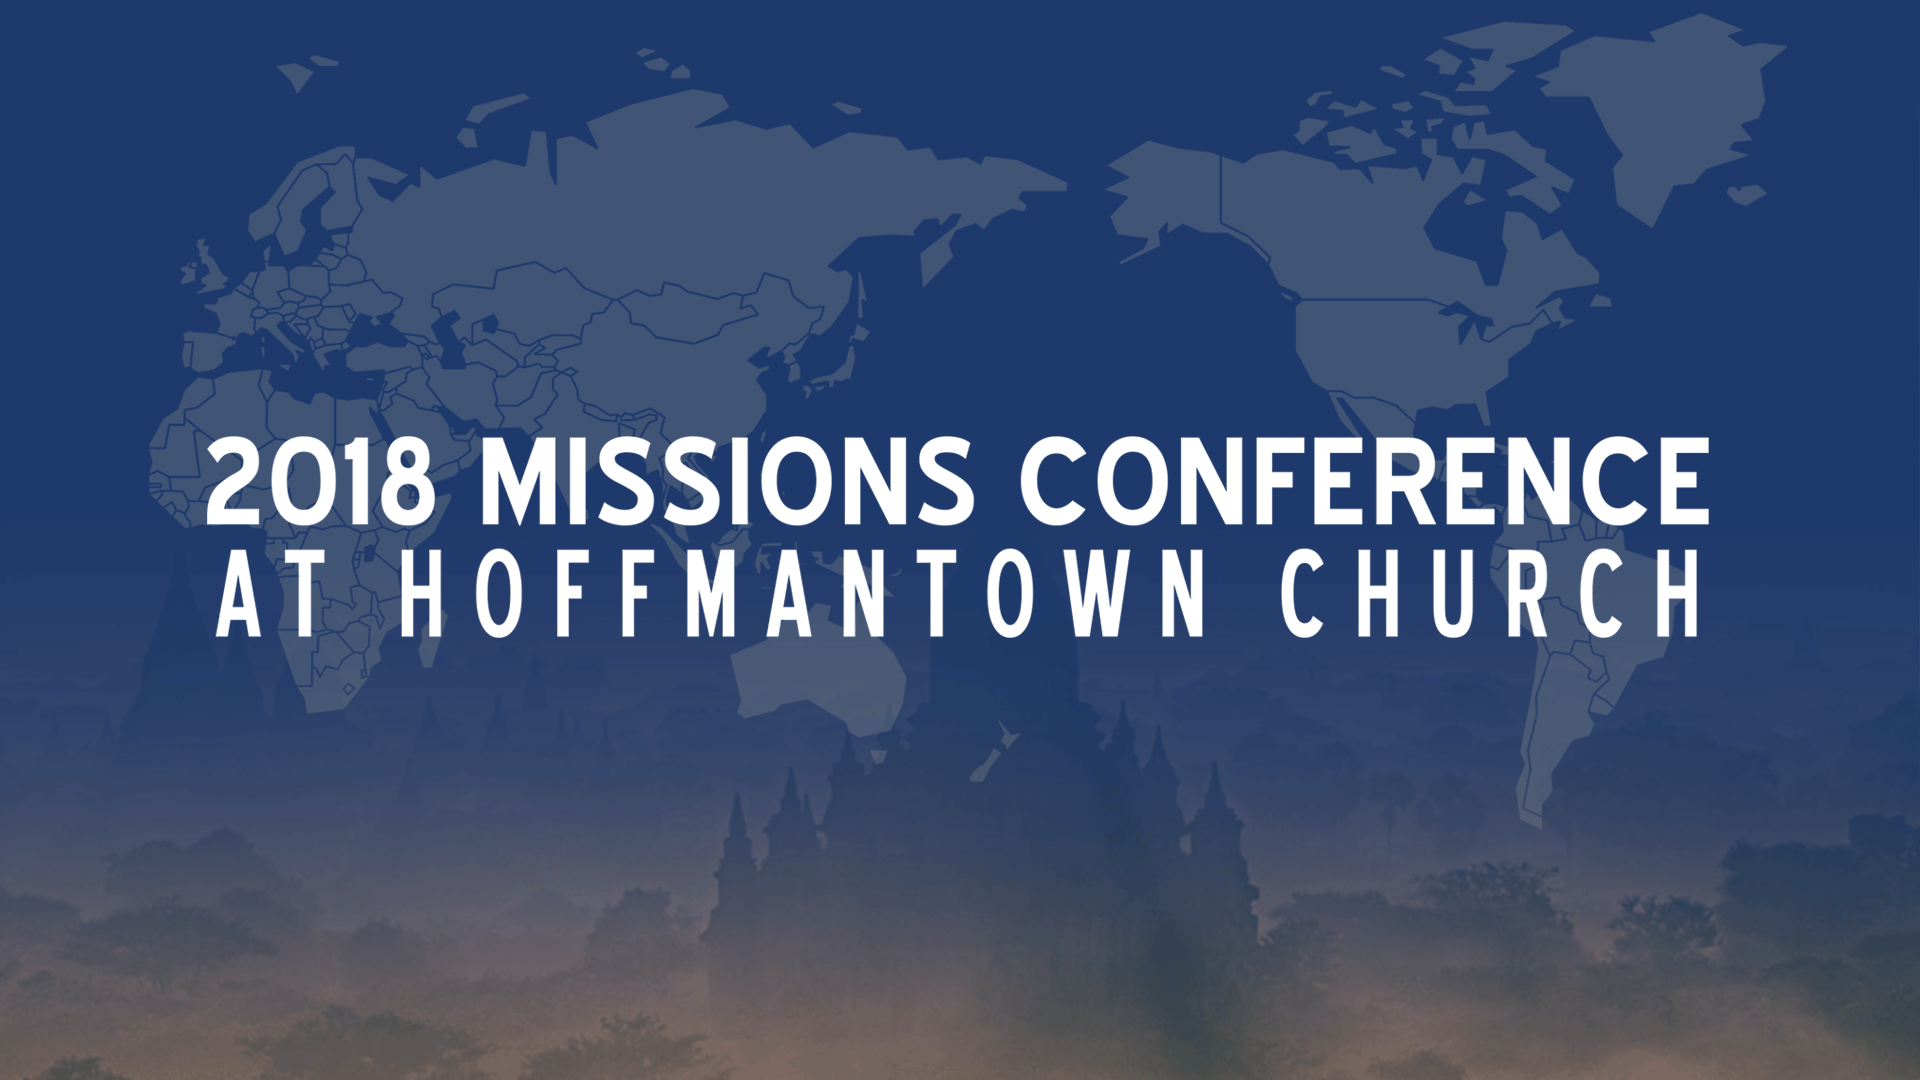 Missions-Conference-1920x1080